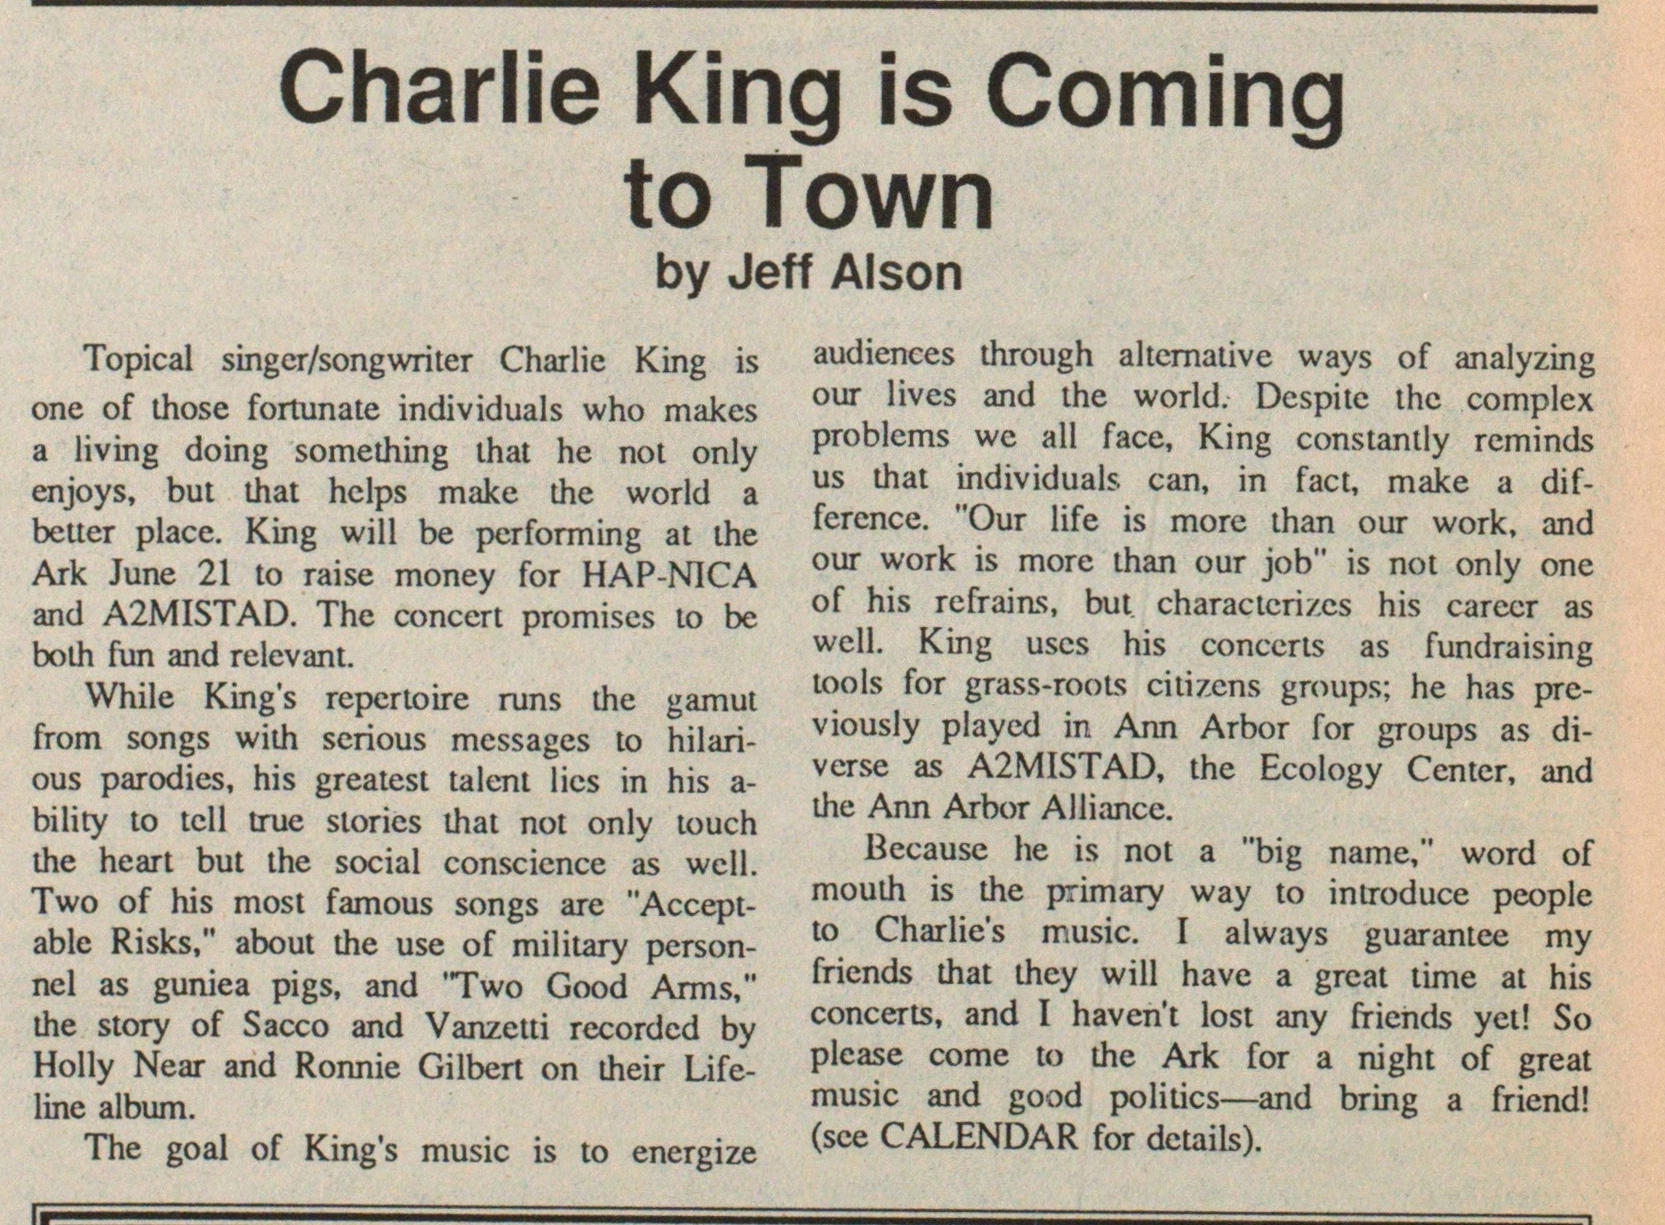 Charlie King Is Coming To Town image